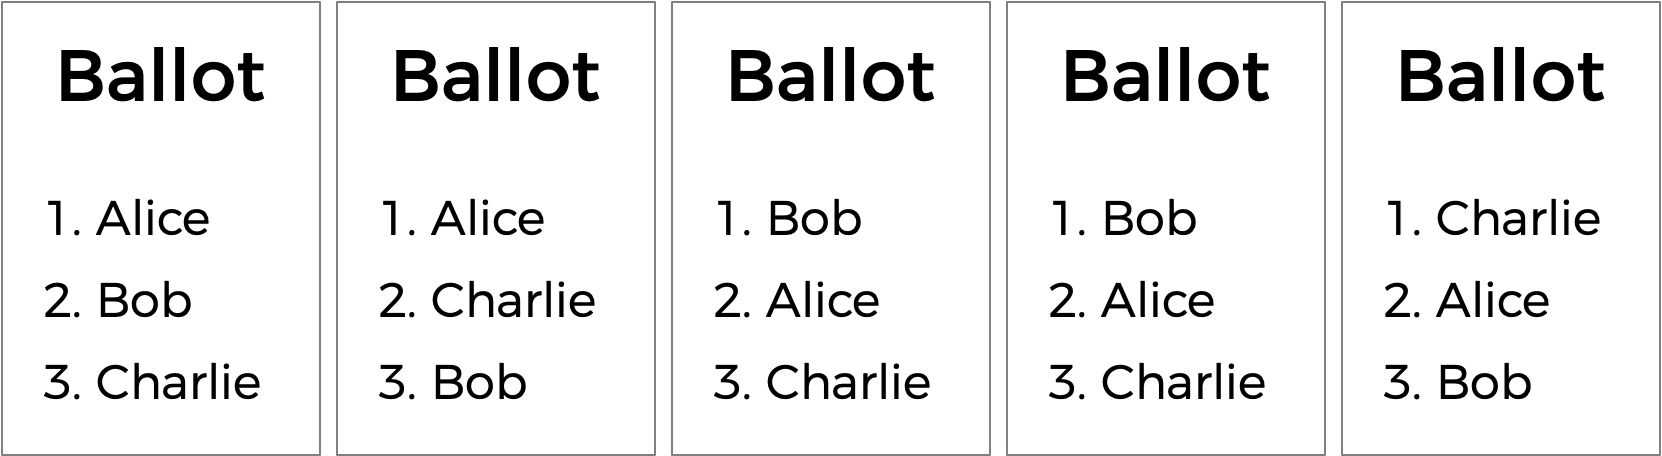 Three ballots, with ranked preferences